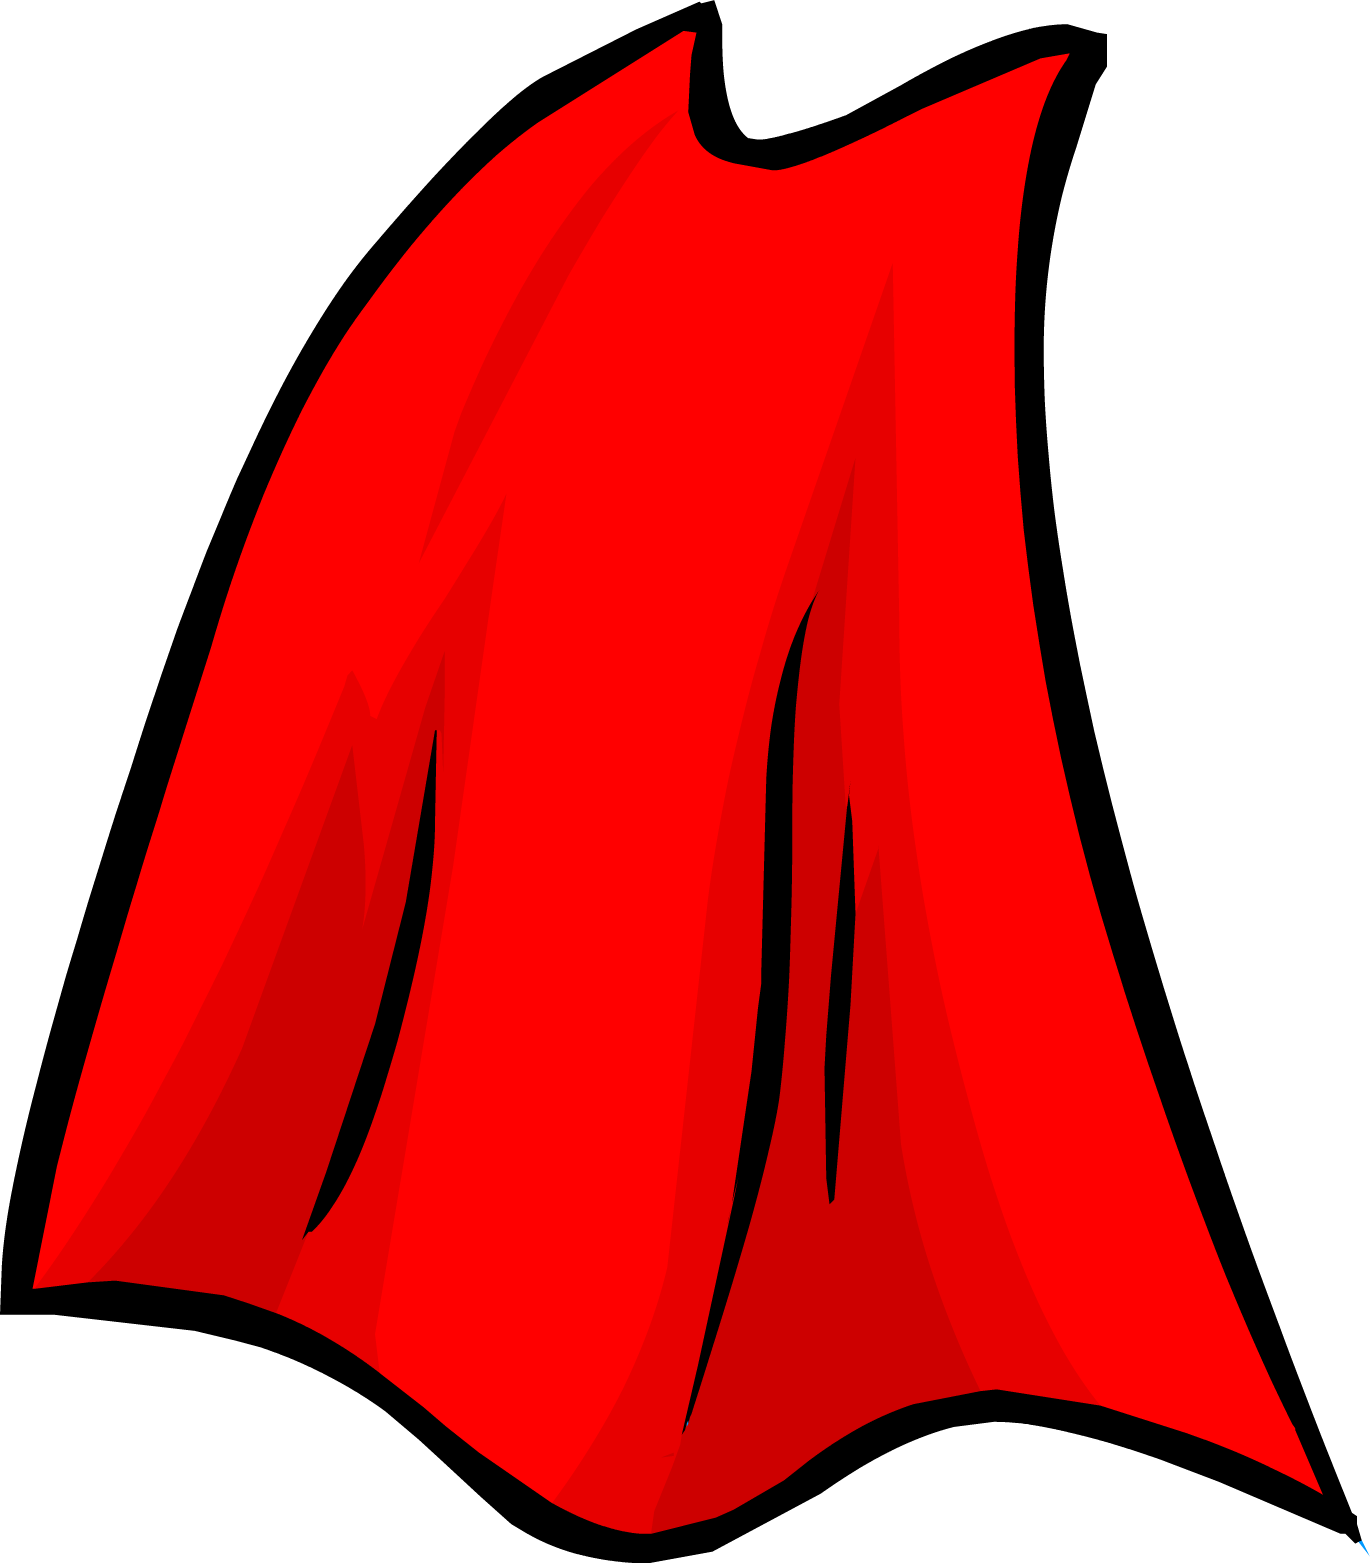 Superhero Capes PNG Transparent Superhero Capes.PNG Images.